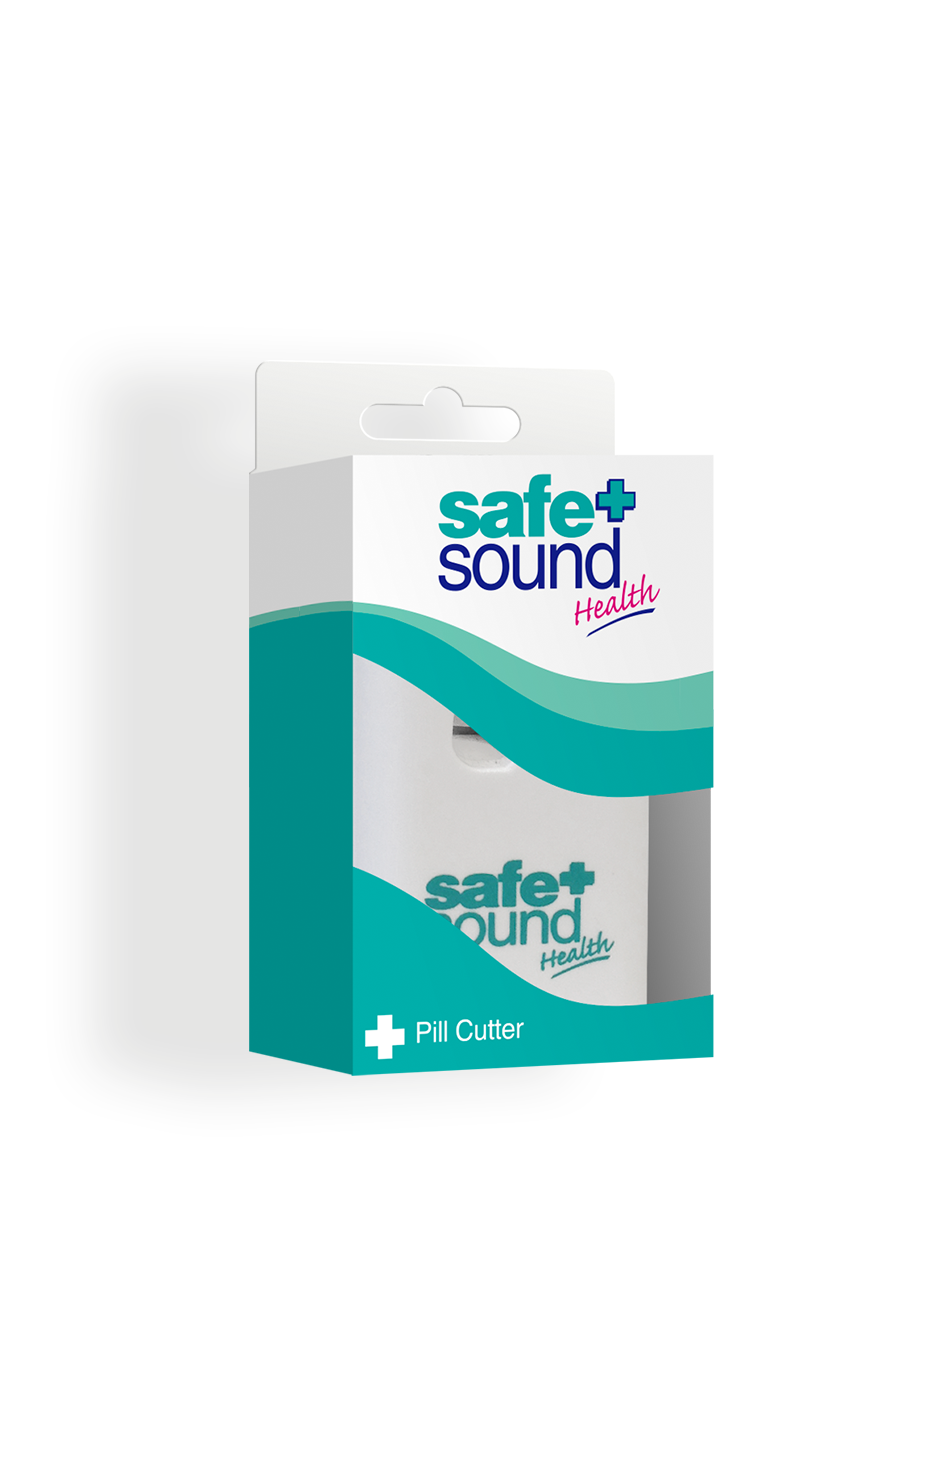 Safe and Sound Health Pill Cutter